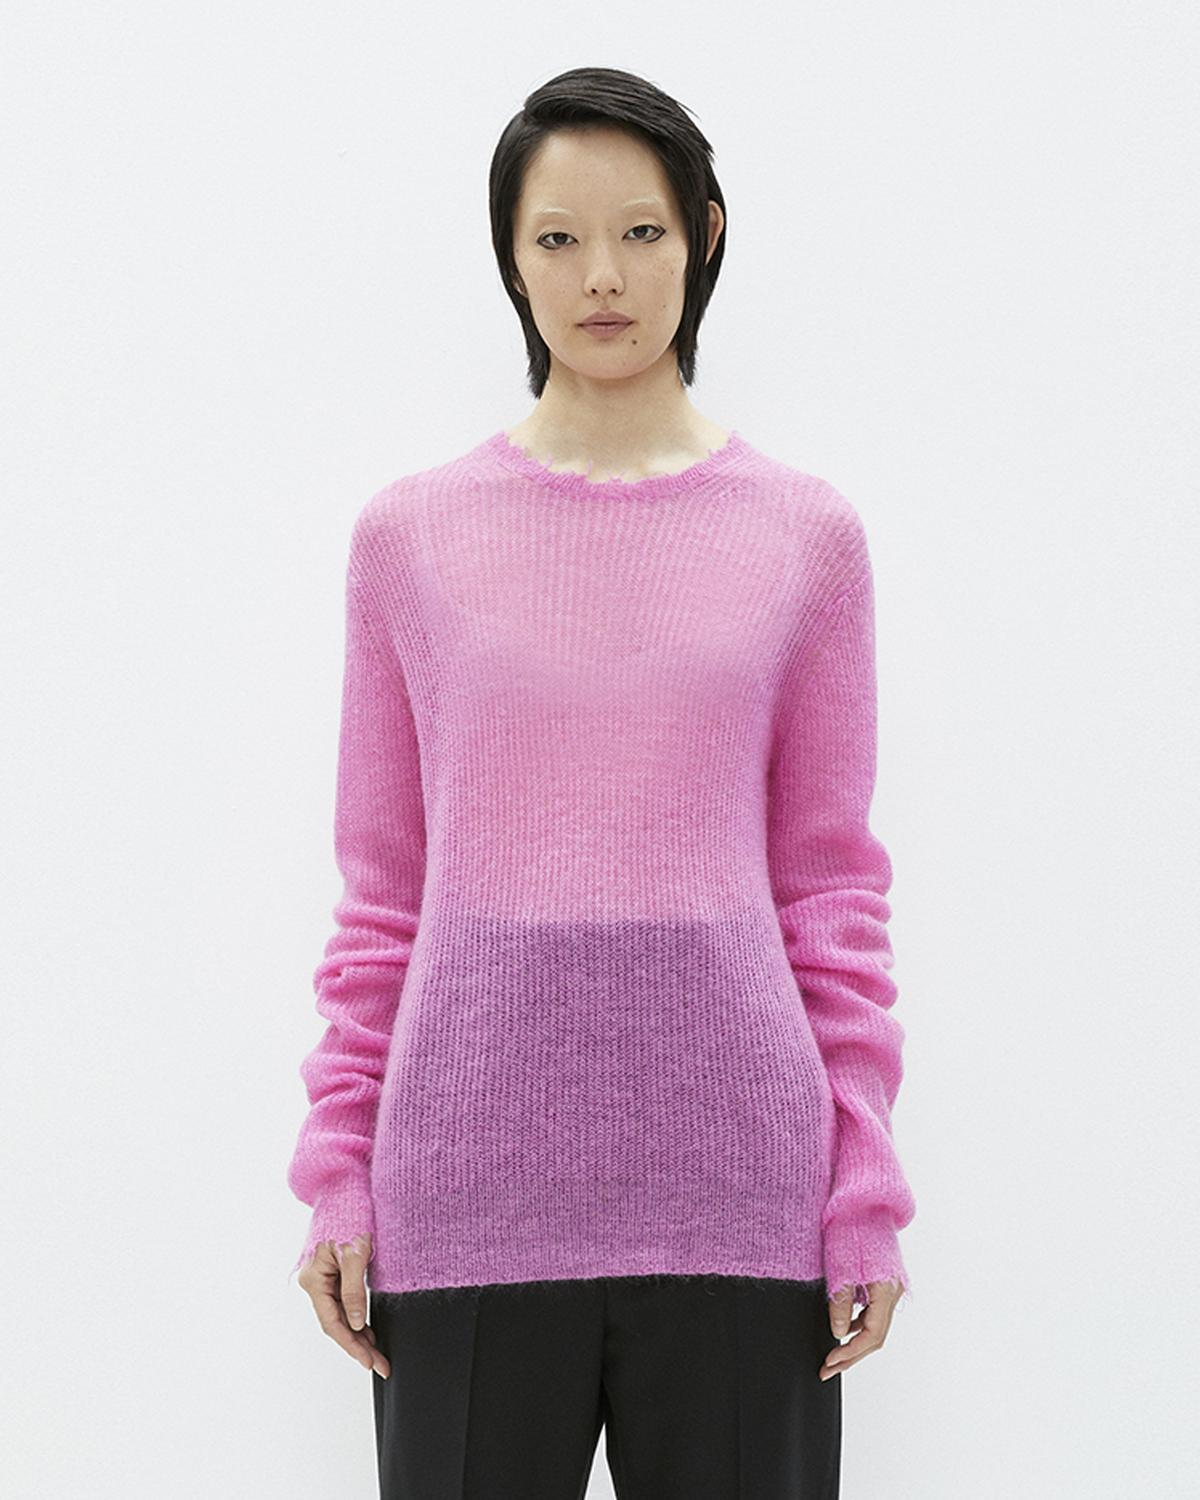 Pink Feather Weight Mohair Crewneck Sweater Helmut Lang Discount Manchester Great Sale Factory Outlet Sale Online Recommend ZHRO22BD8